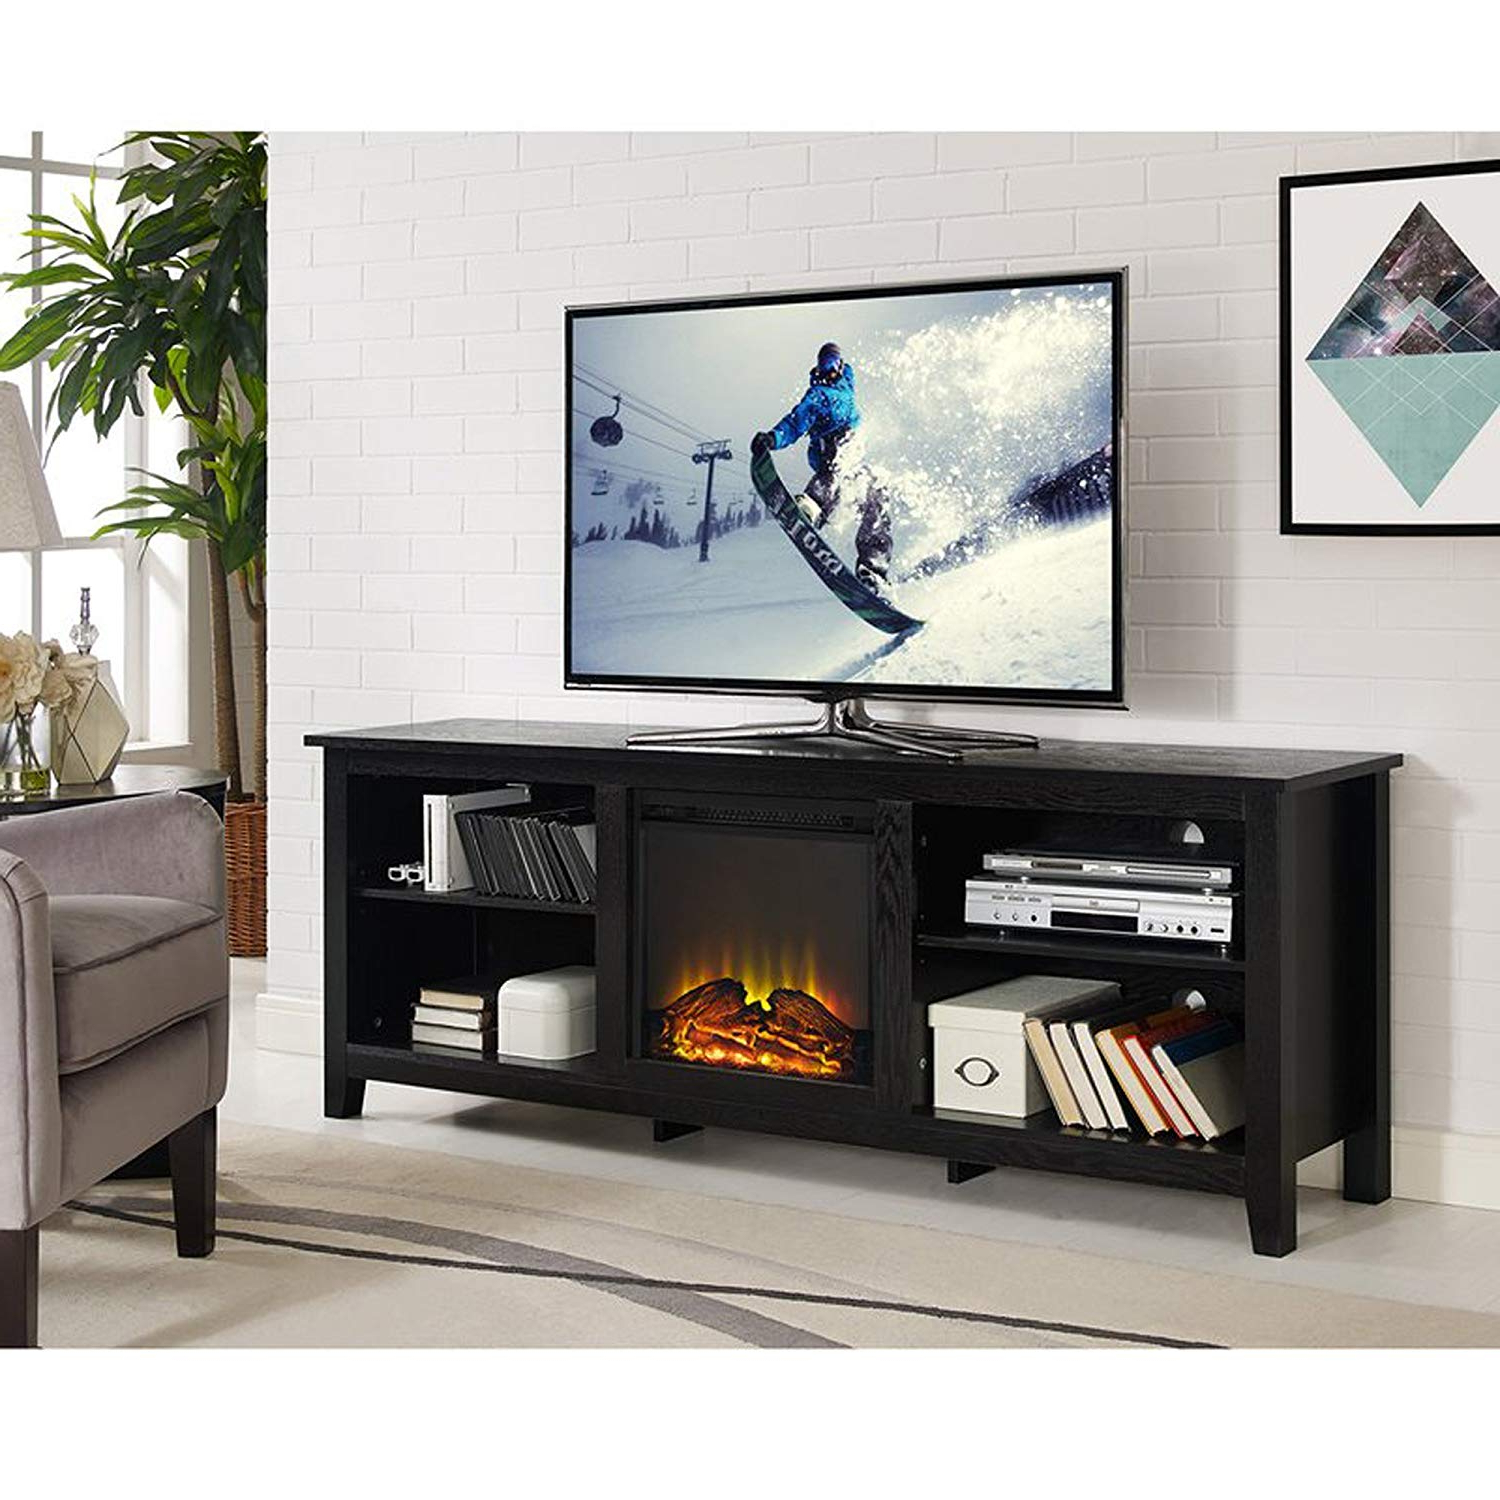 Well Liked Amazon: Electric Fireplace Tv Stand For Tvs Up To 70 Within Kilian Grey 74 Inch Tv Stands (Gallery 15 of 20)